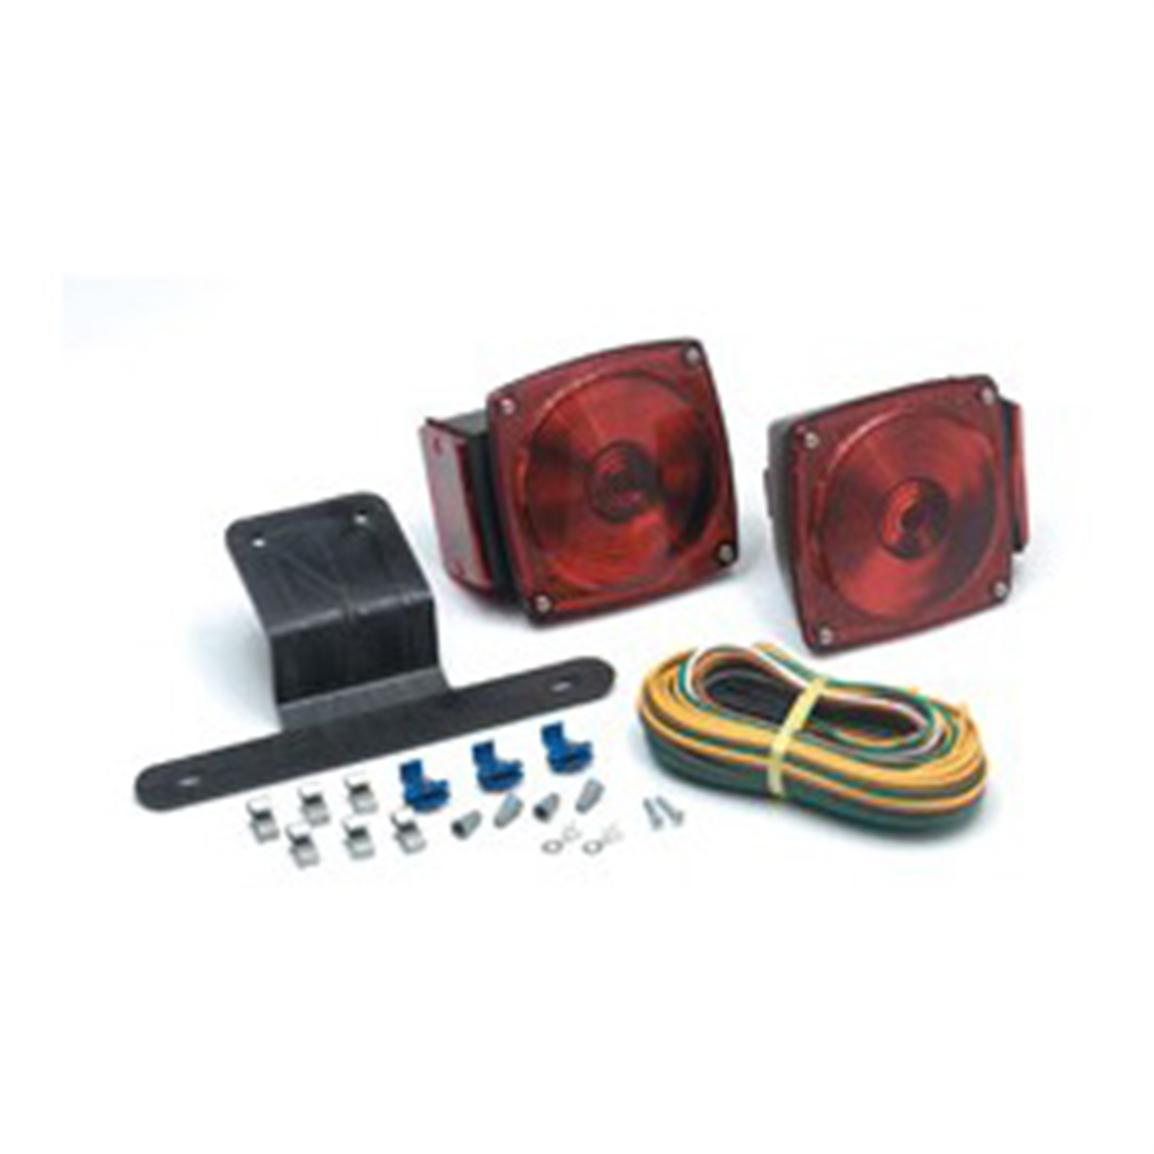 Optronics Trailer Light Kit Submersible TL-9RK